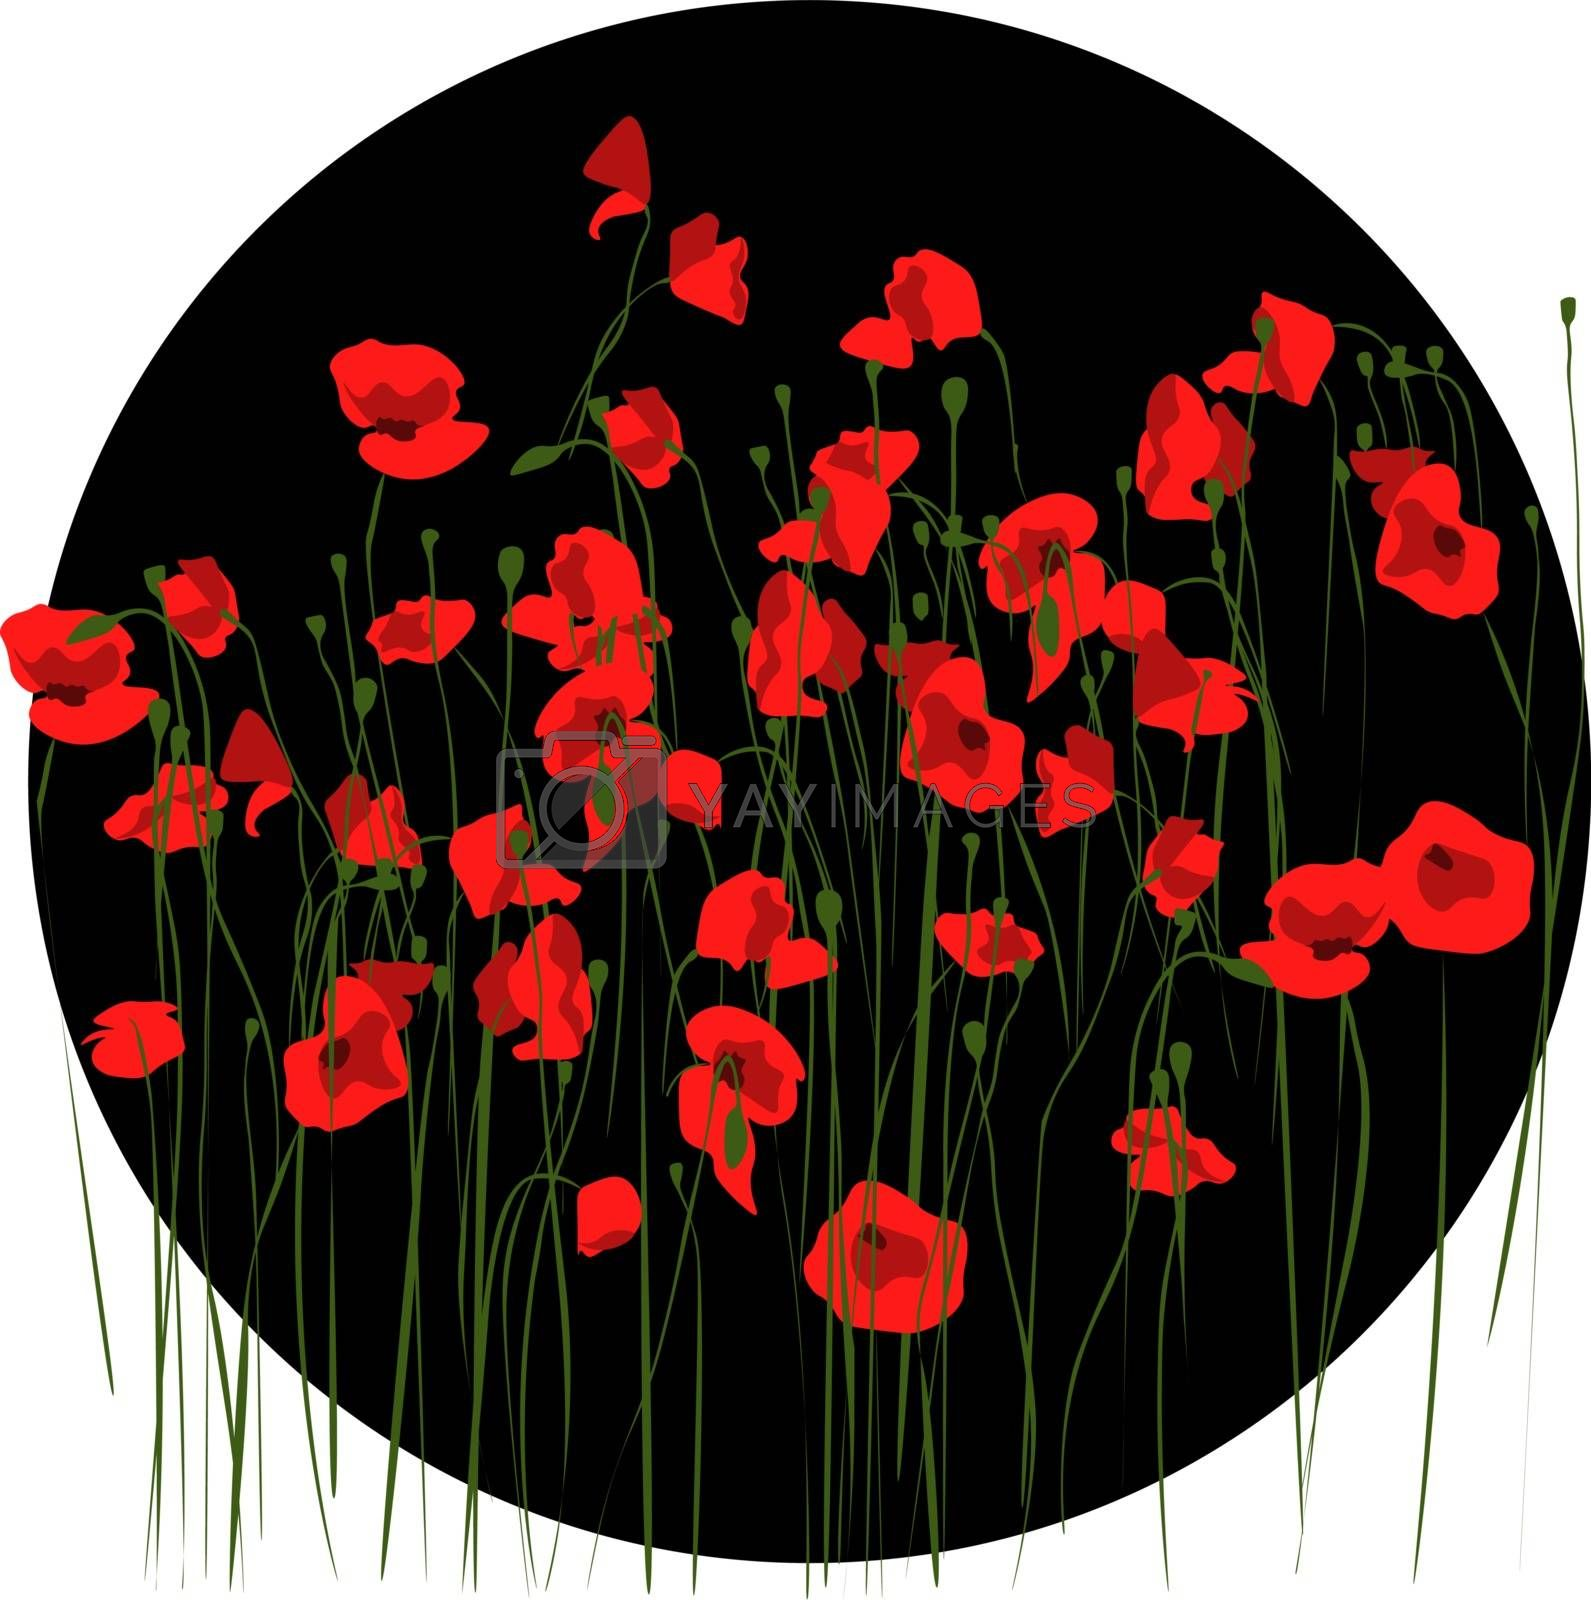 elegant dark illustration of black circle with red poppy flowers